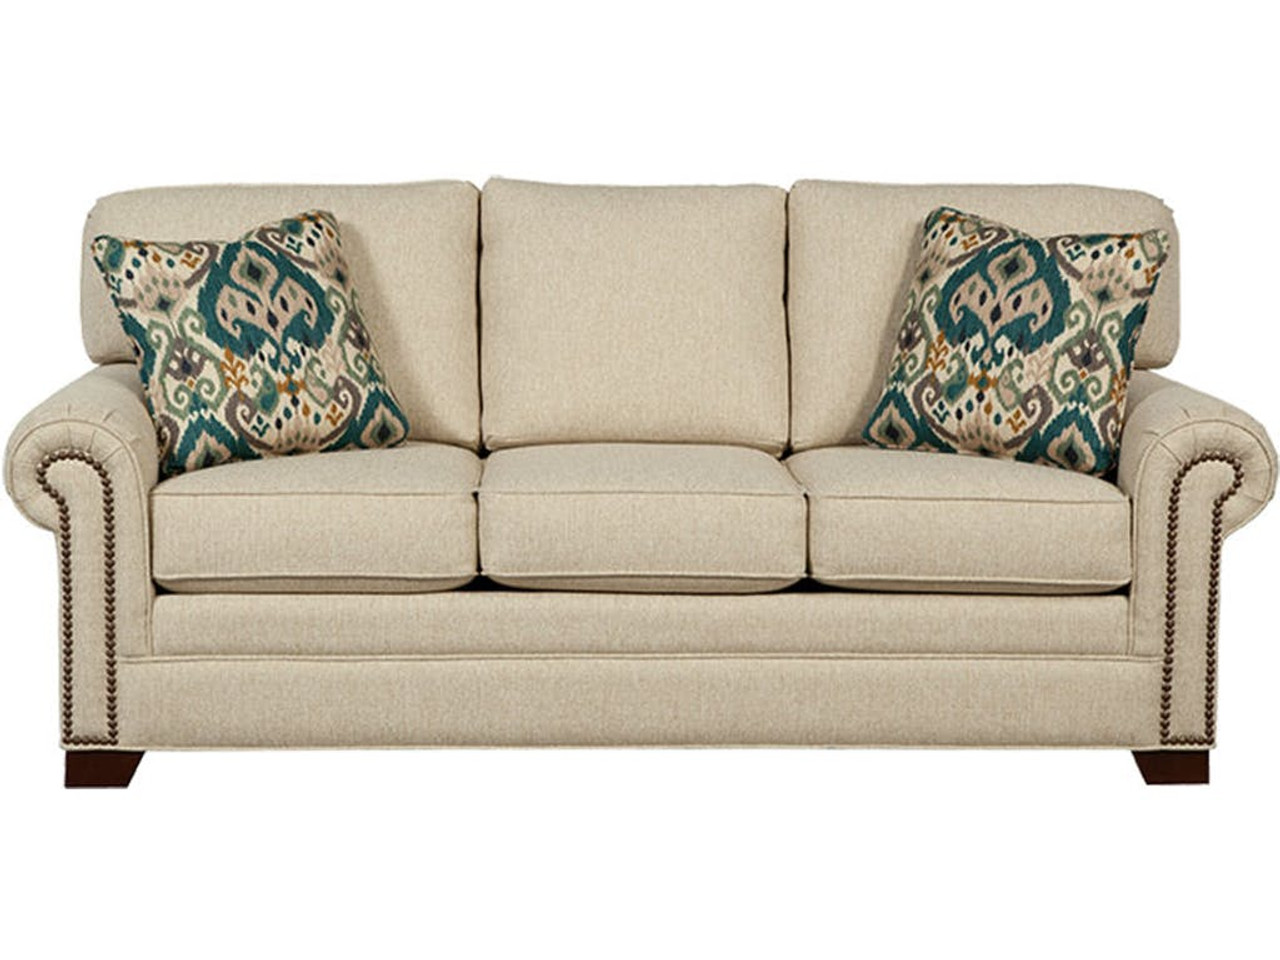 - Buy The Craftmaster Model 756550-68 Sleeper Sofa/Couch On Sale